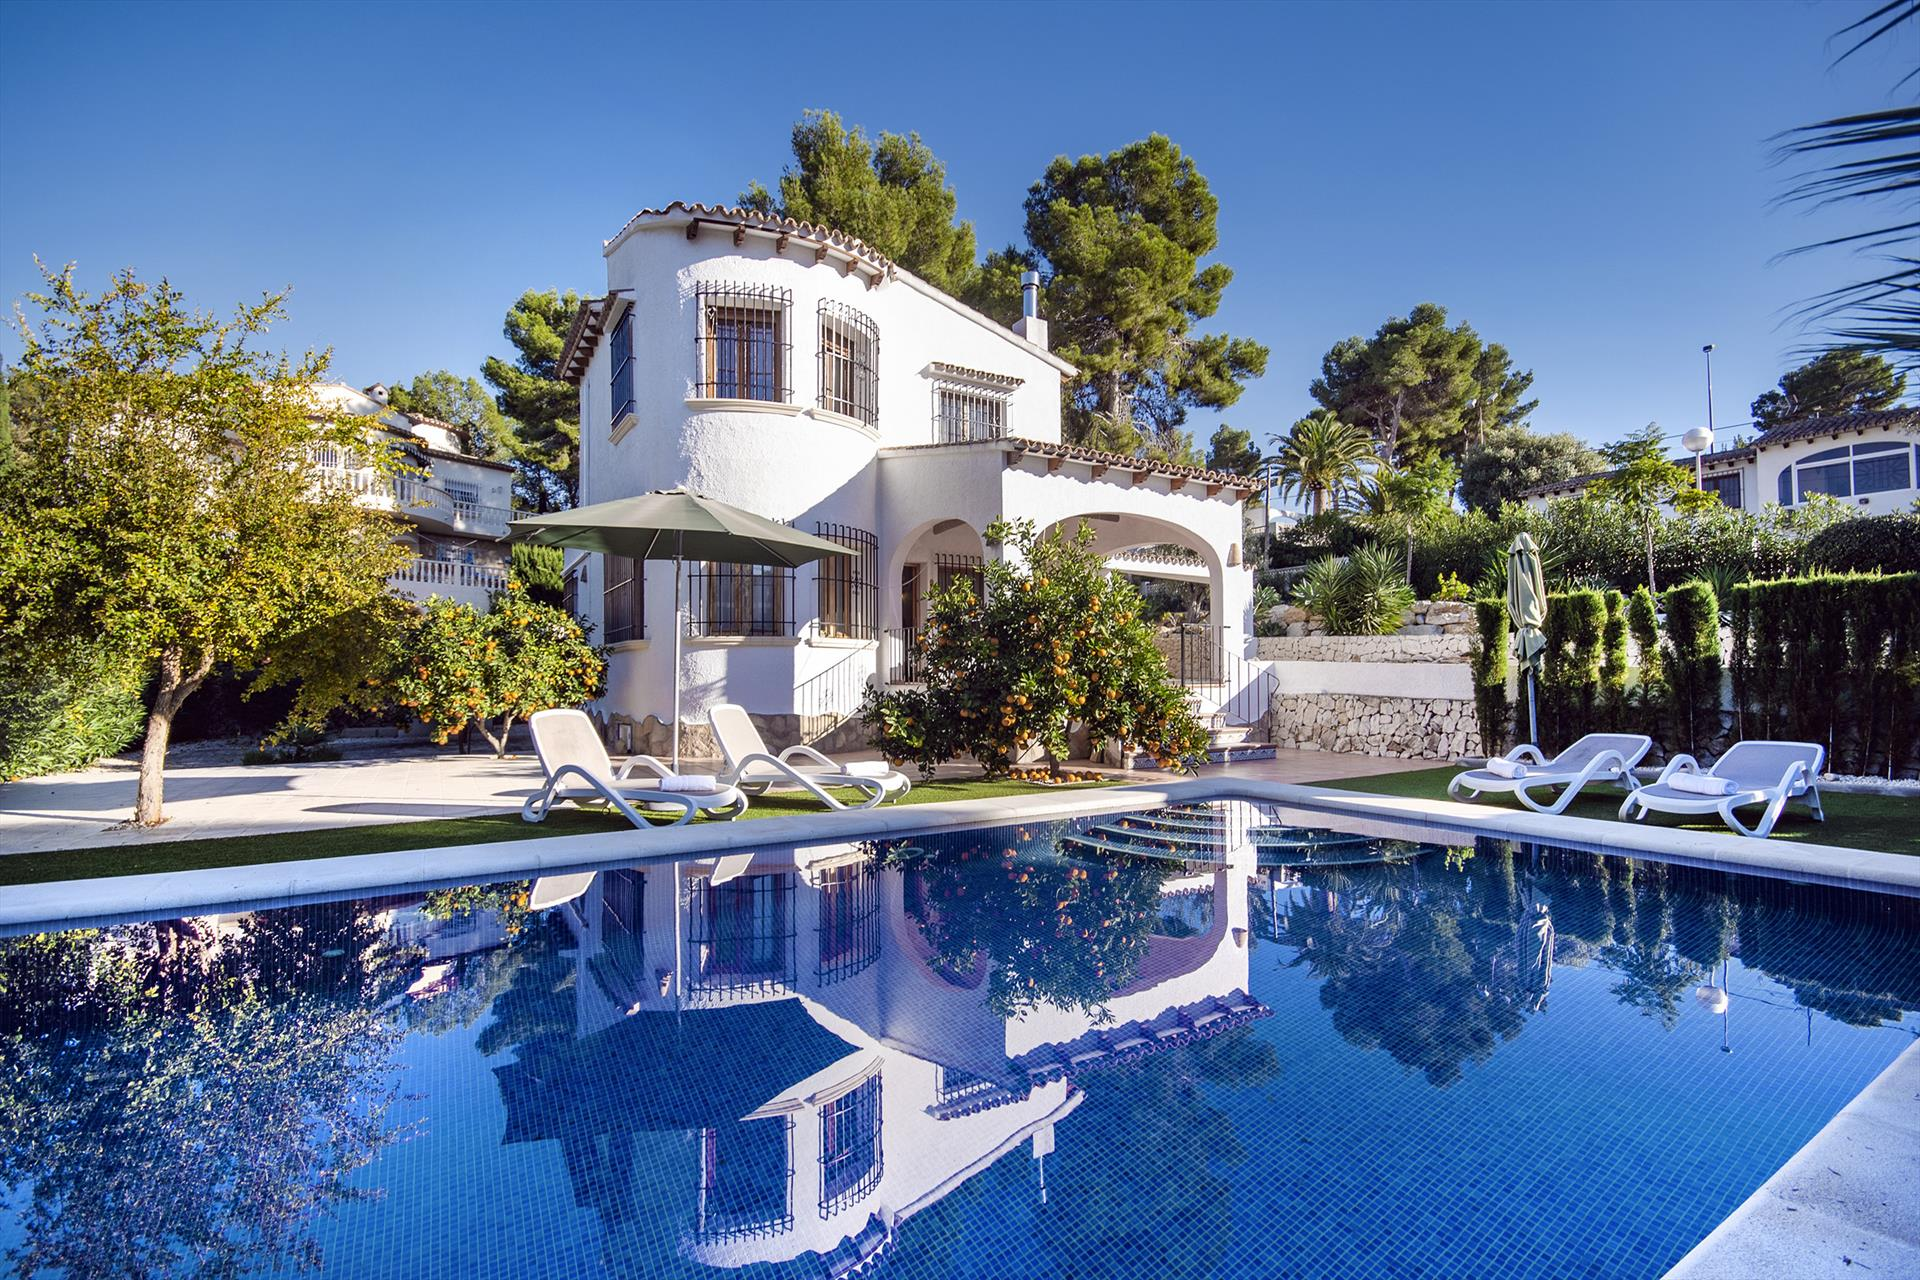 Sunnyside White House, Wonderful villa with classic style in Moraira, on the Costa Blanca, Spain with private pool for 6 persons. The villa is.....